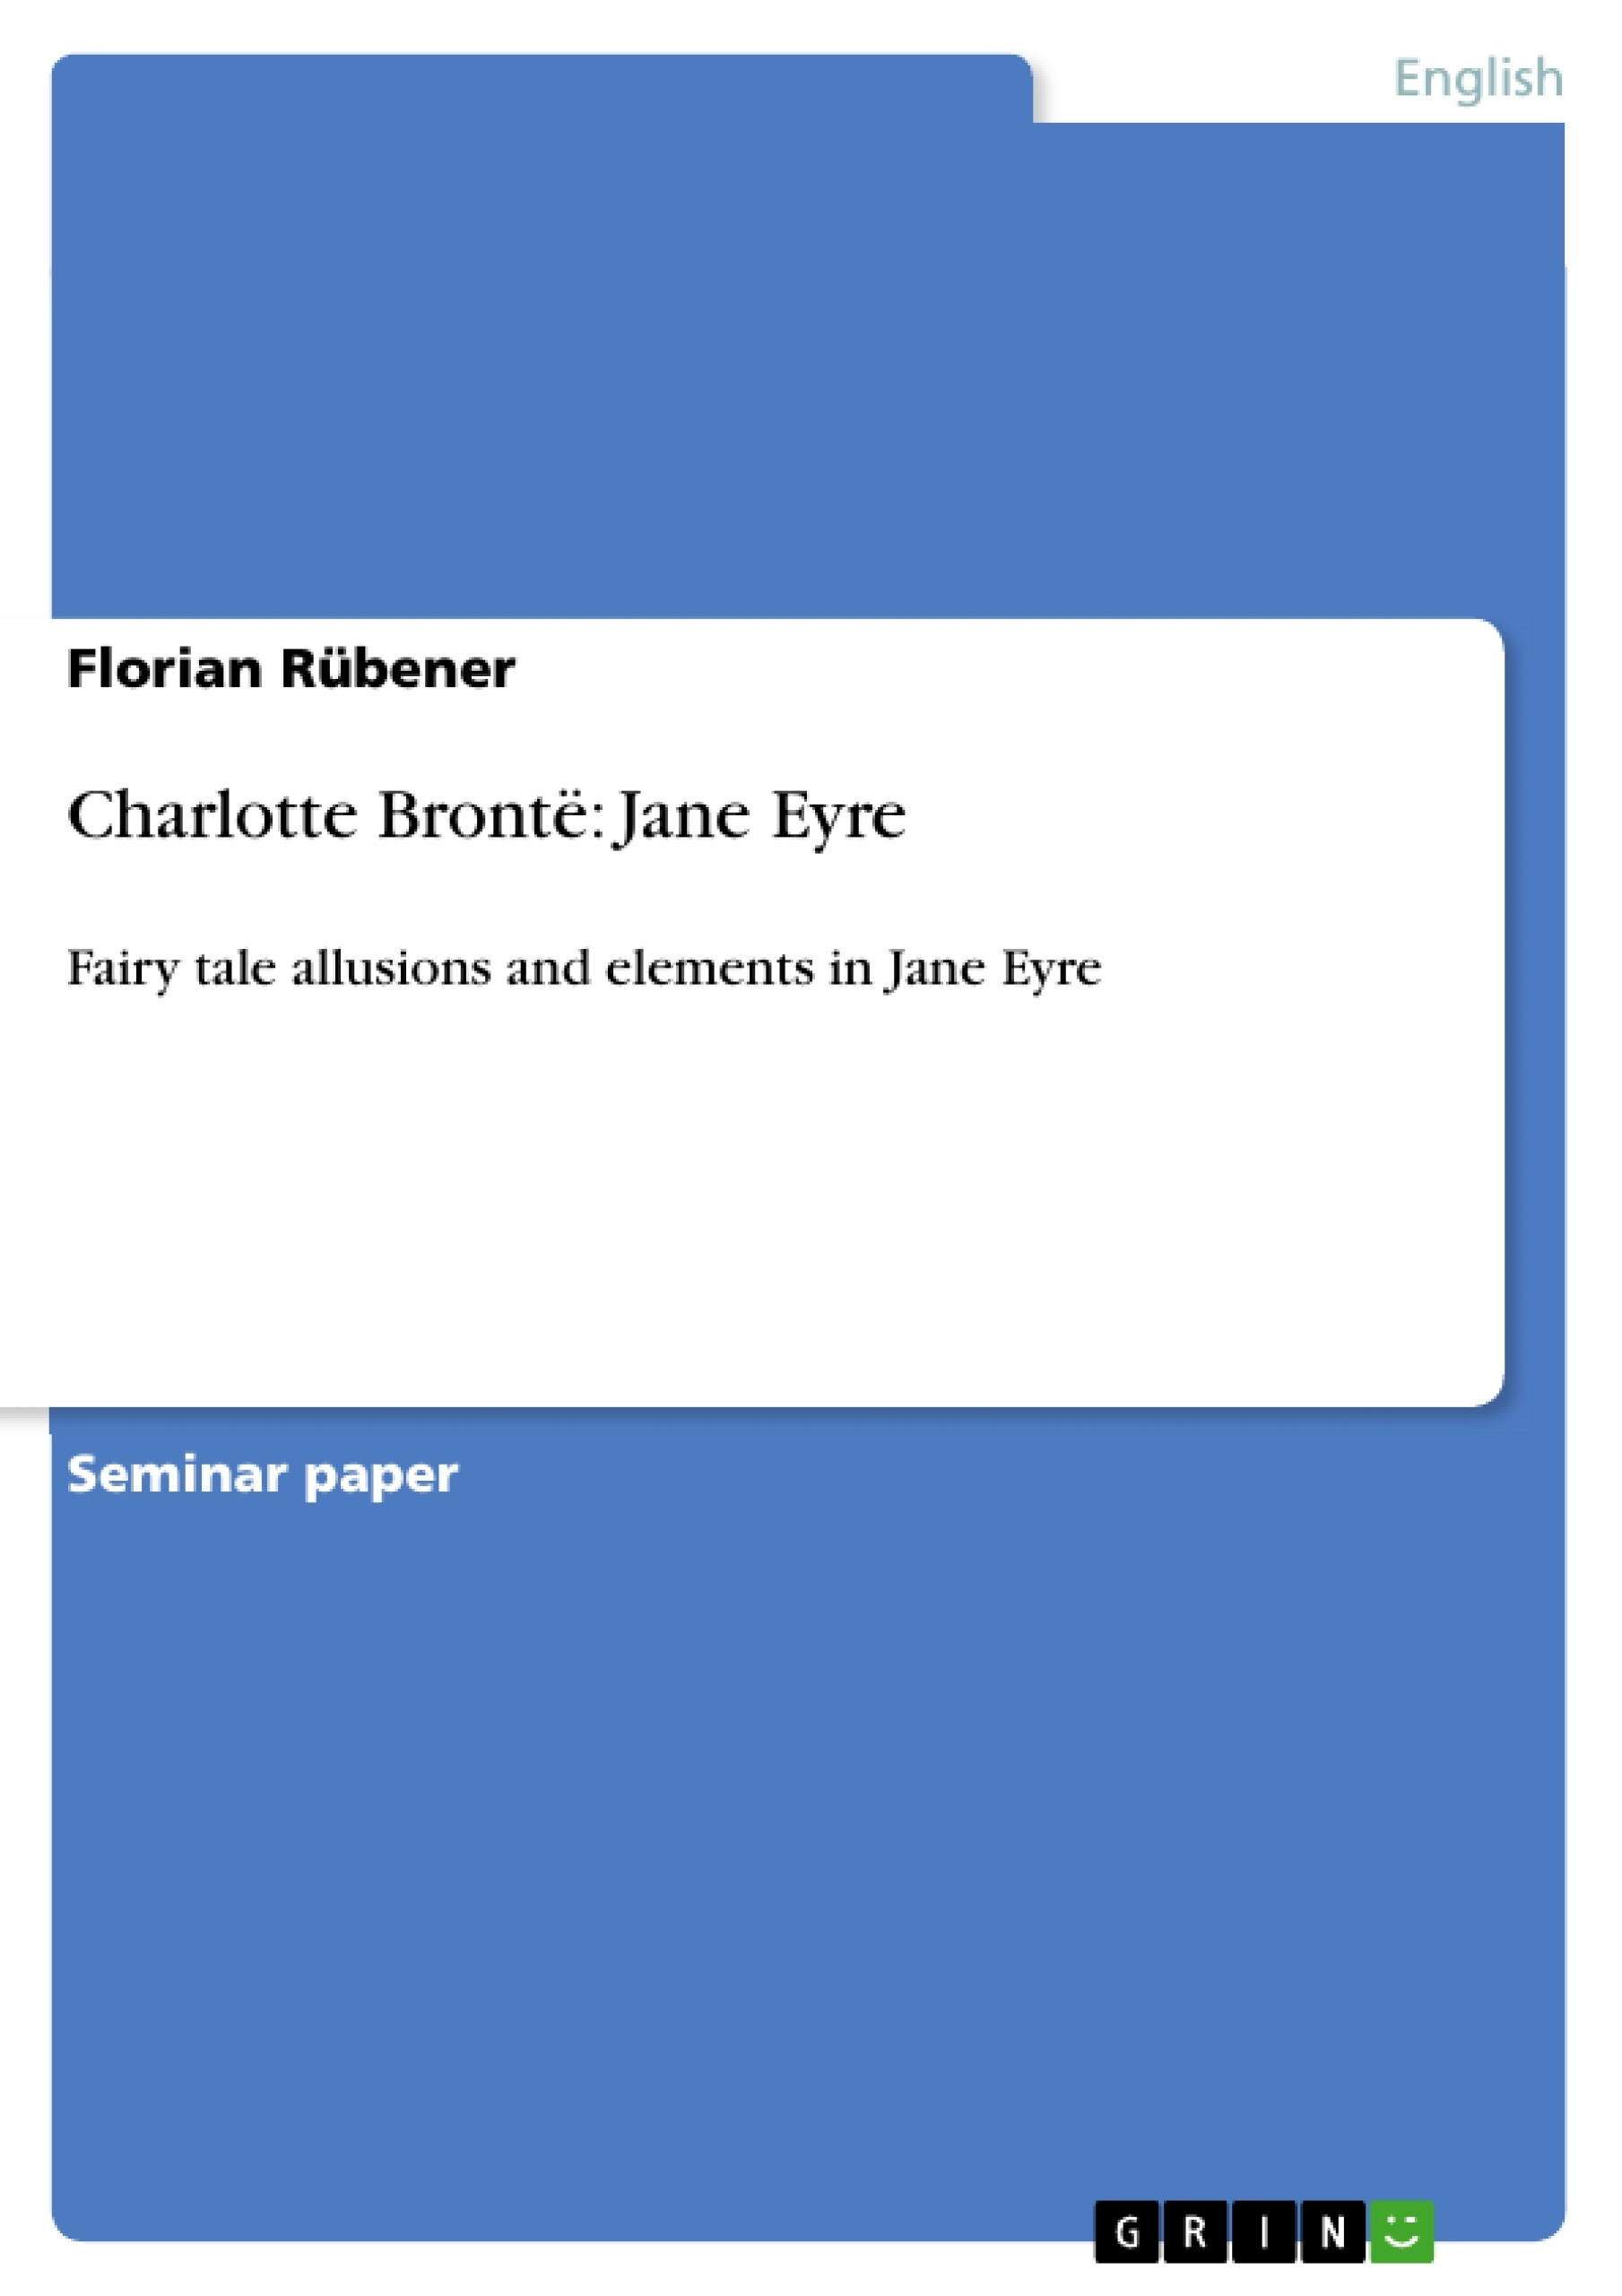 jane eyre essay thesis charlotte bront euml jane eyre publish your  charlotte bront euml jane eyre publish your master s thesis charlotte bronteuml jane eyre publish your jane eyre essay